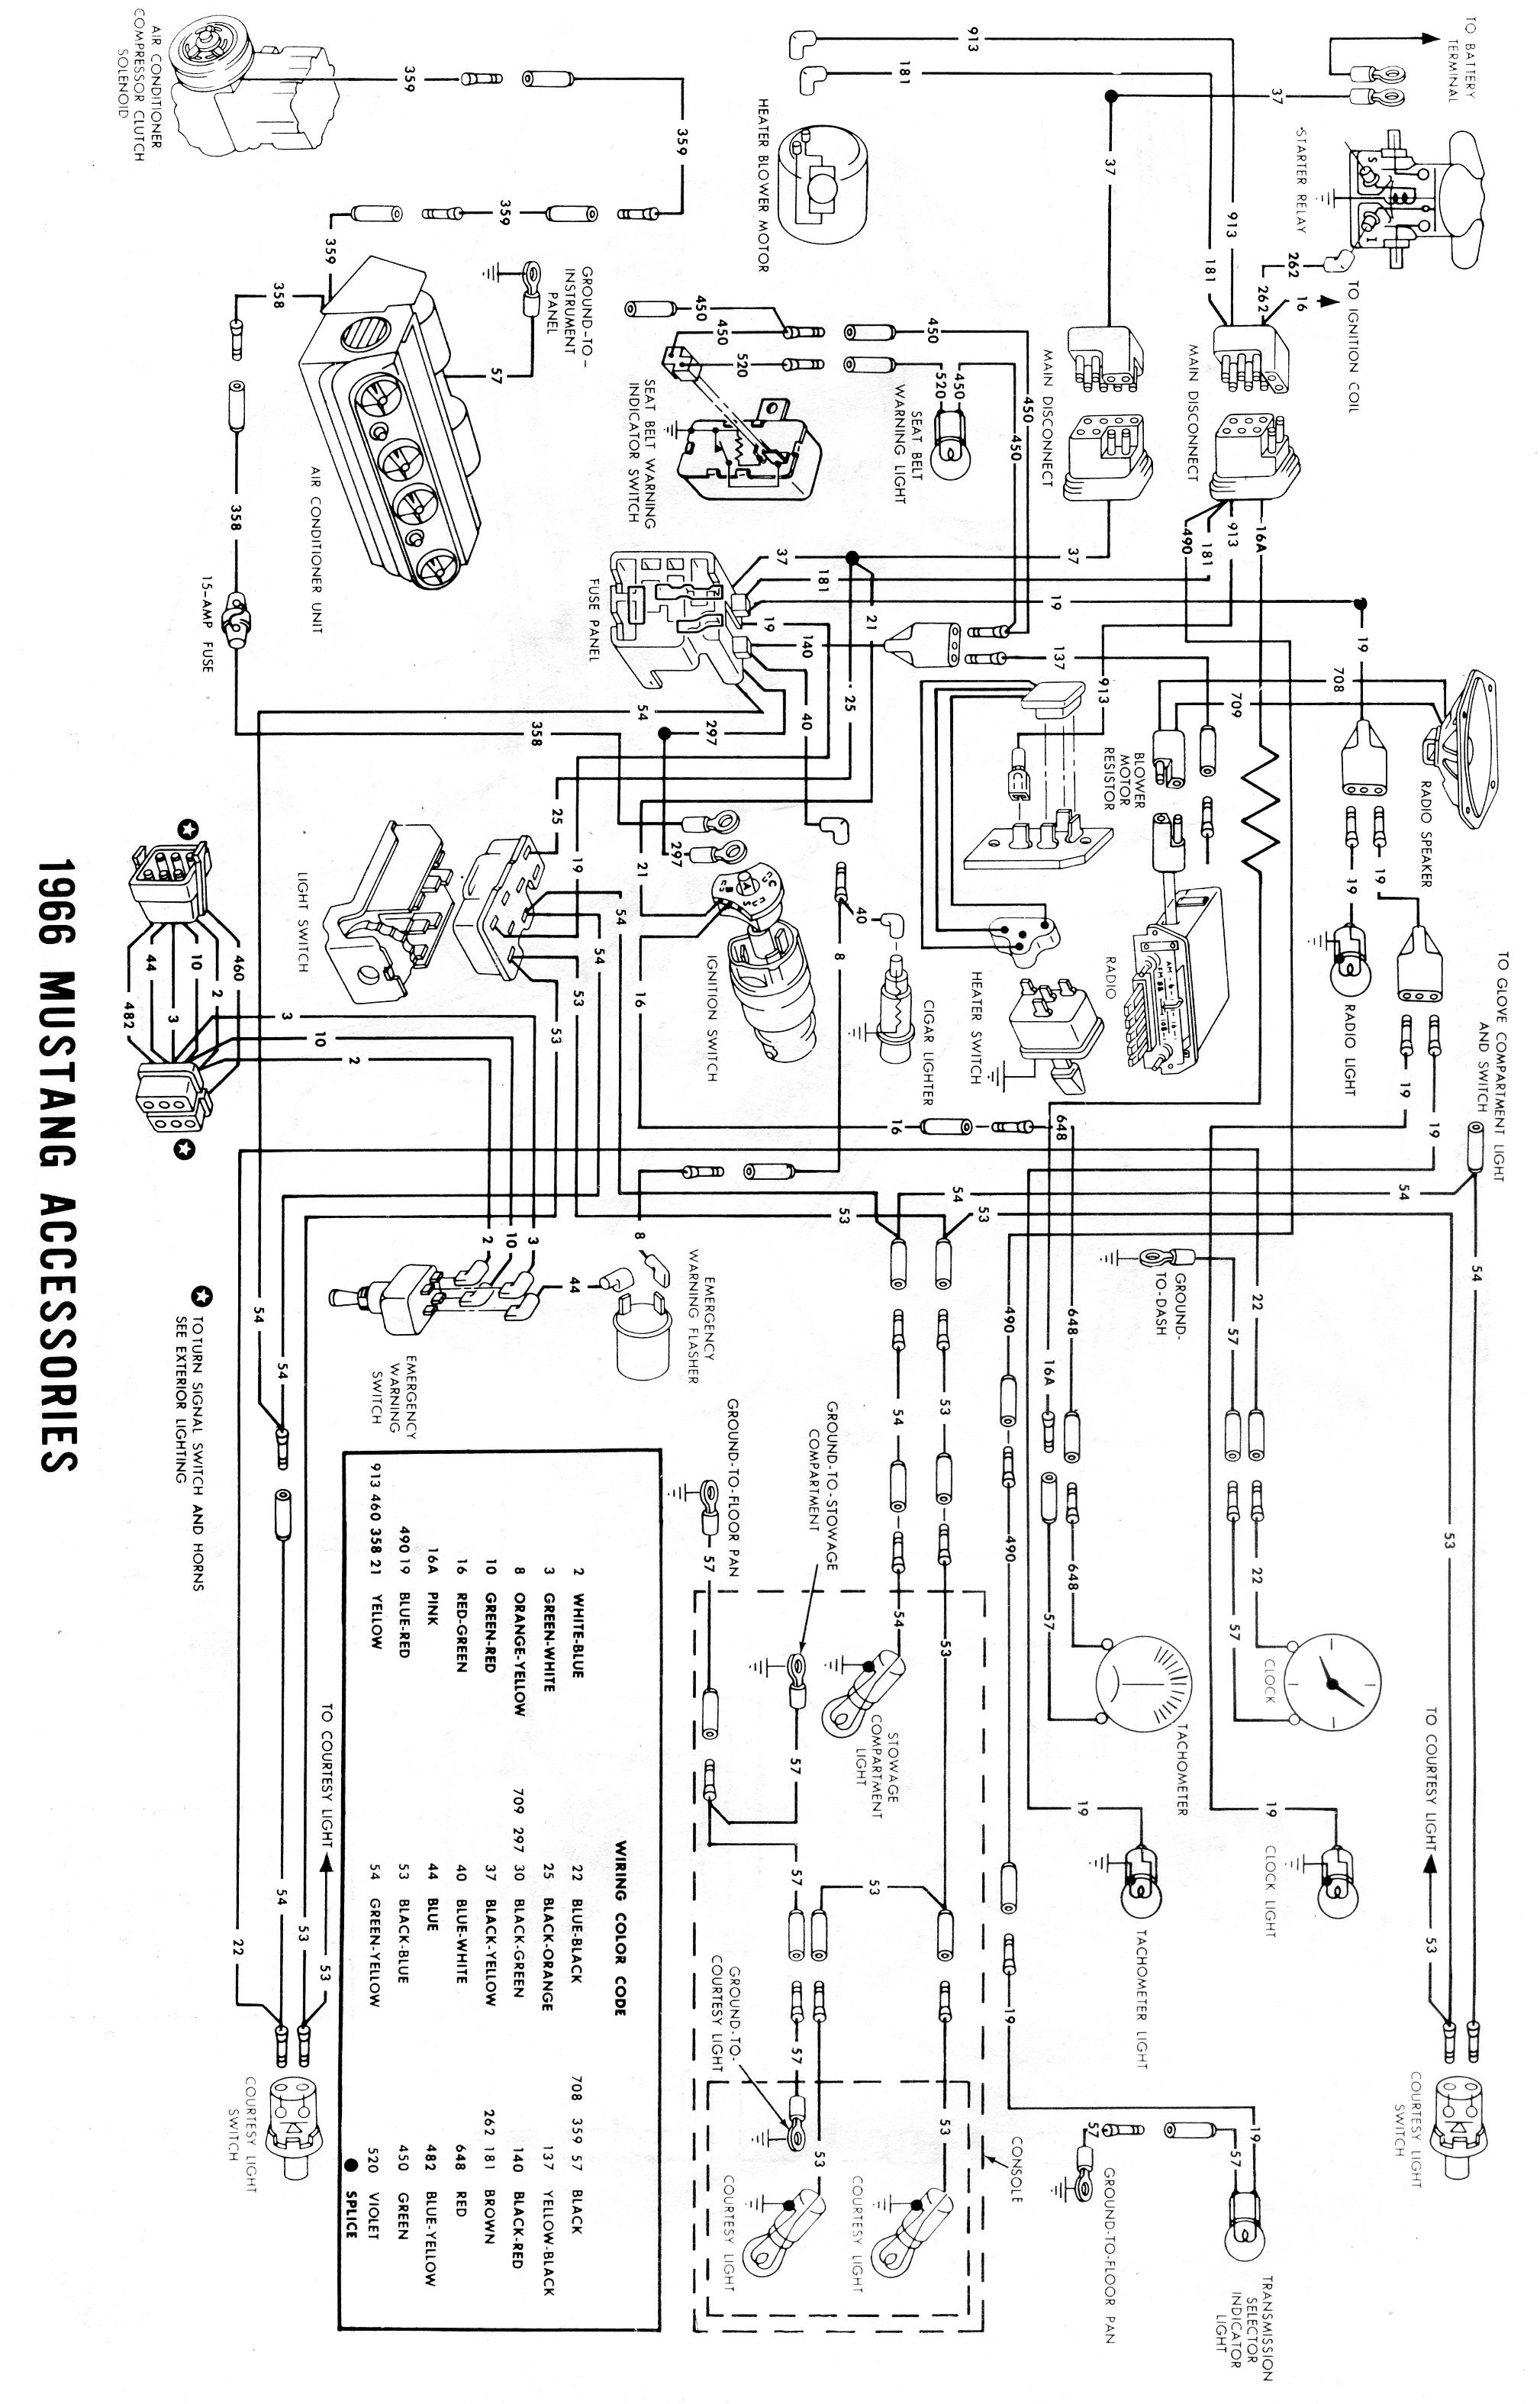 1968 mustang fuse diagram why does my instrument    fuse    keep blowing out  ford  why does my instrument    fuse    keep blowing out  ford